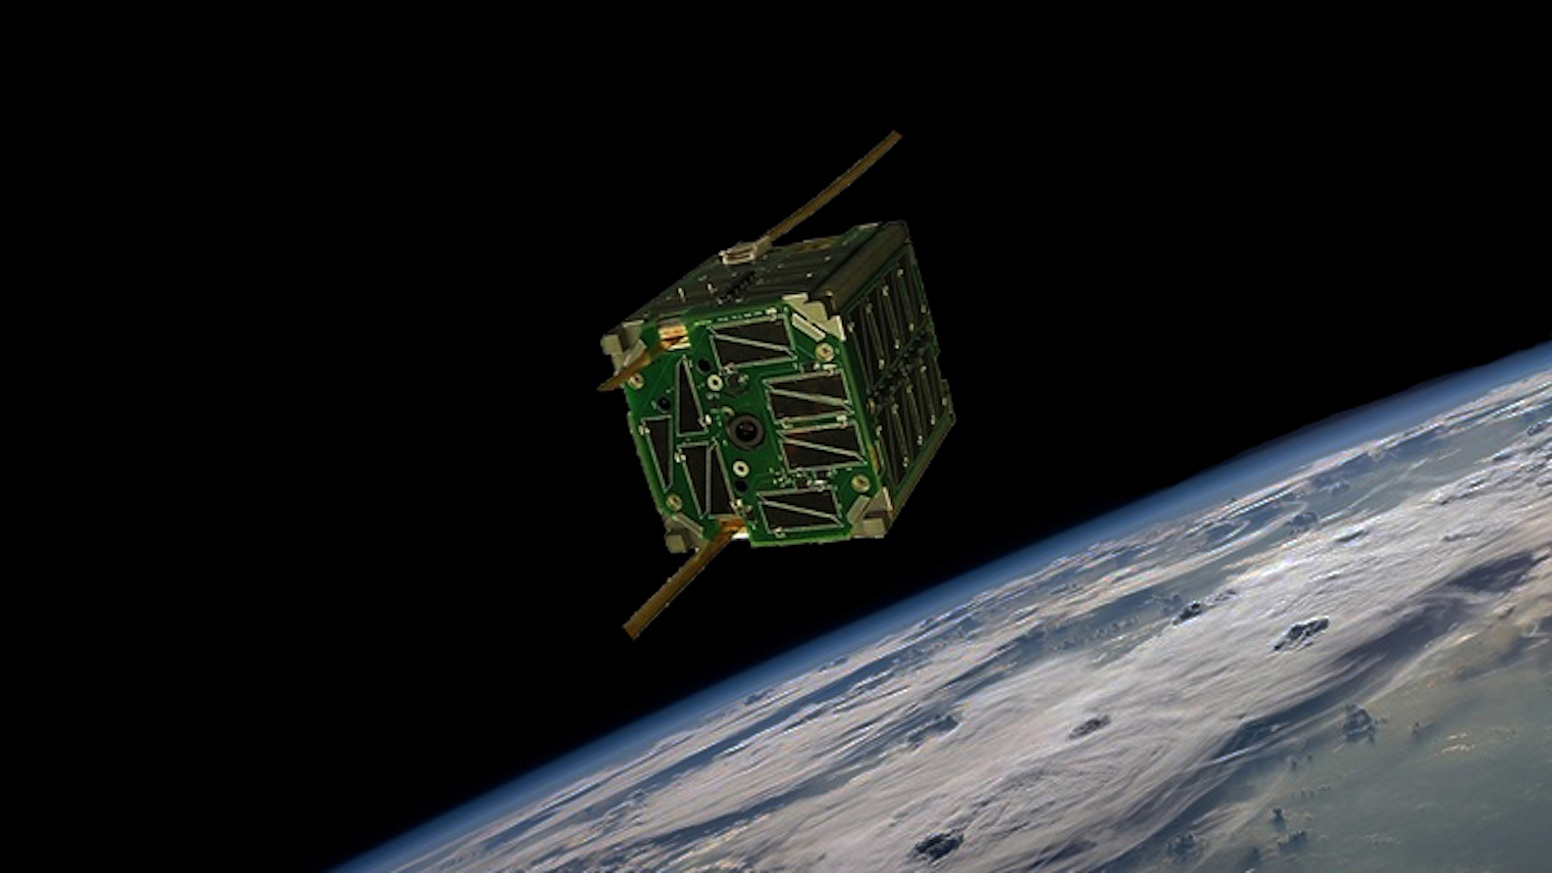 The First Satellite For UFO Research We Intend To Search Low Earth Orbit